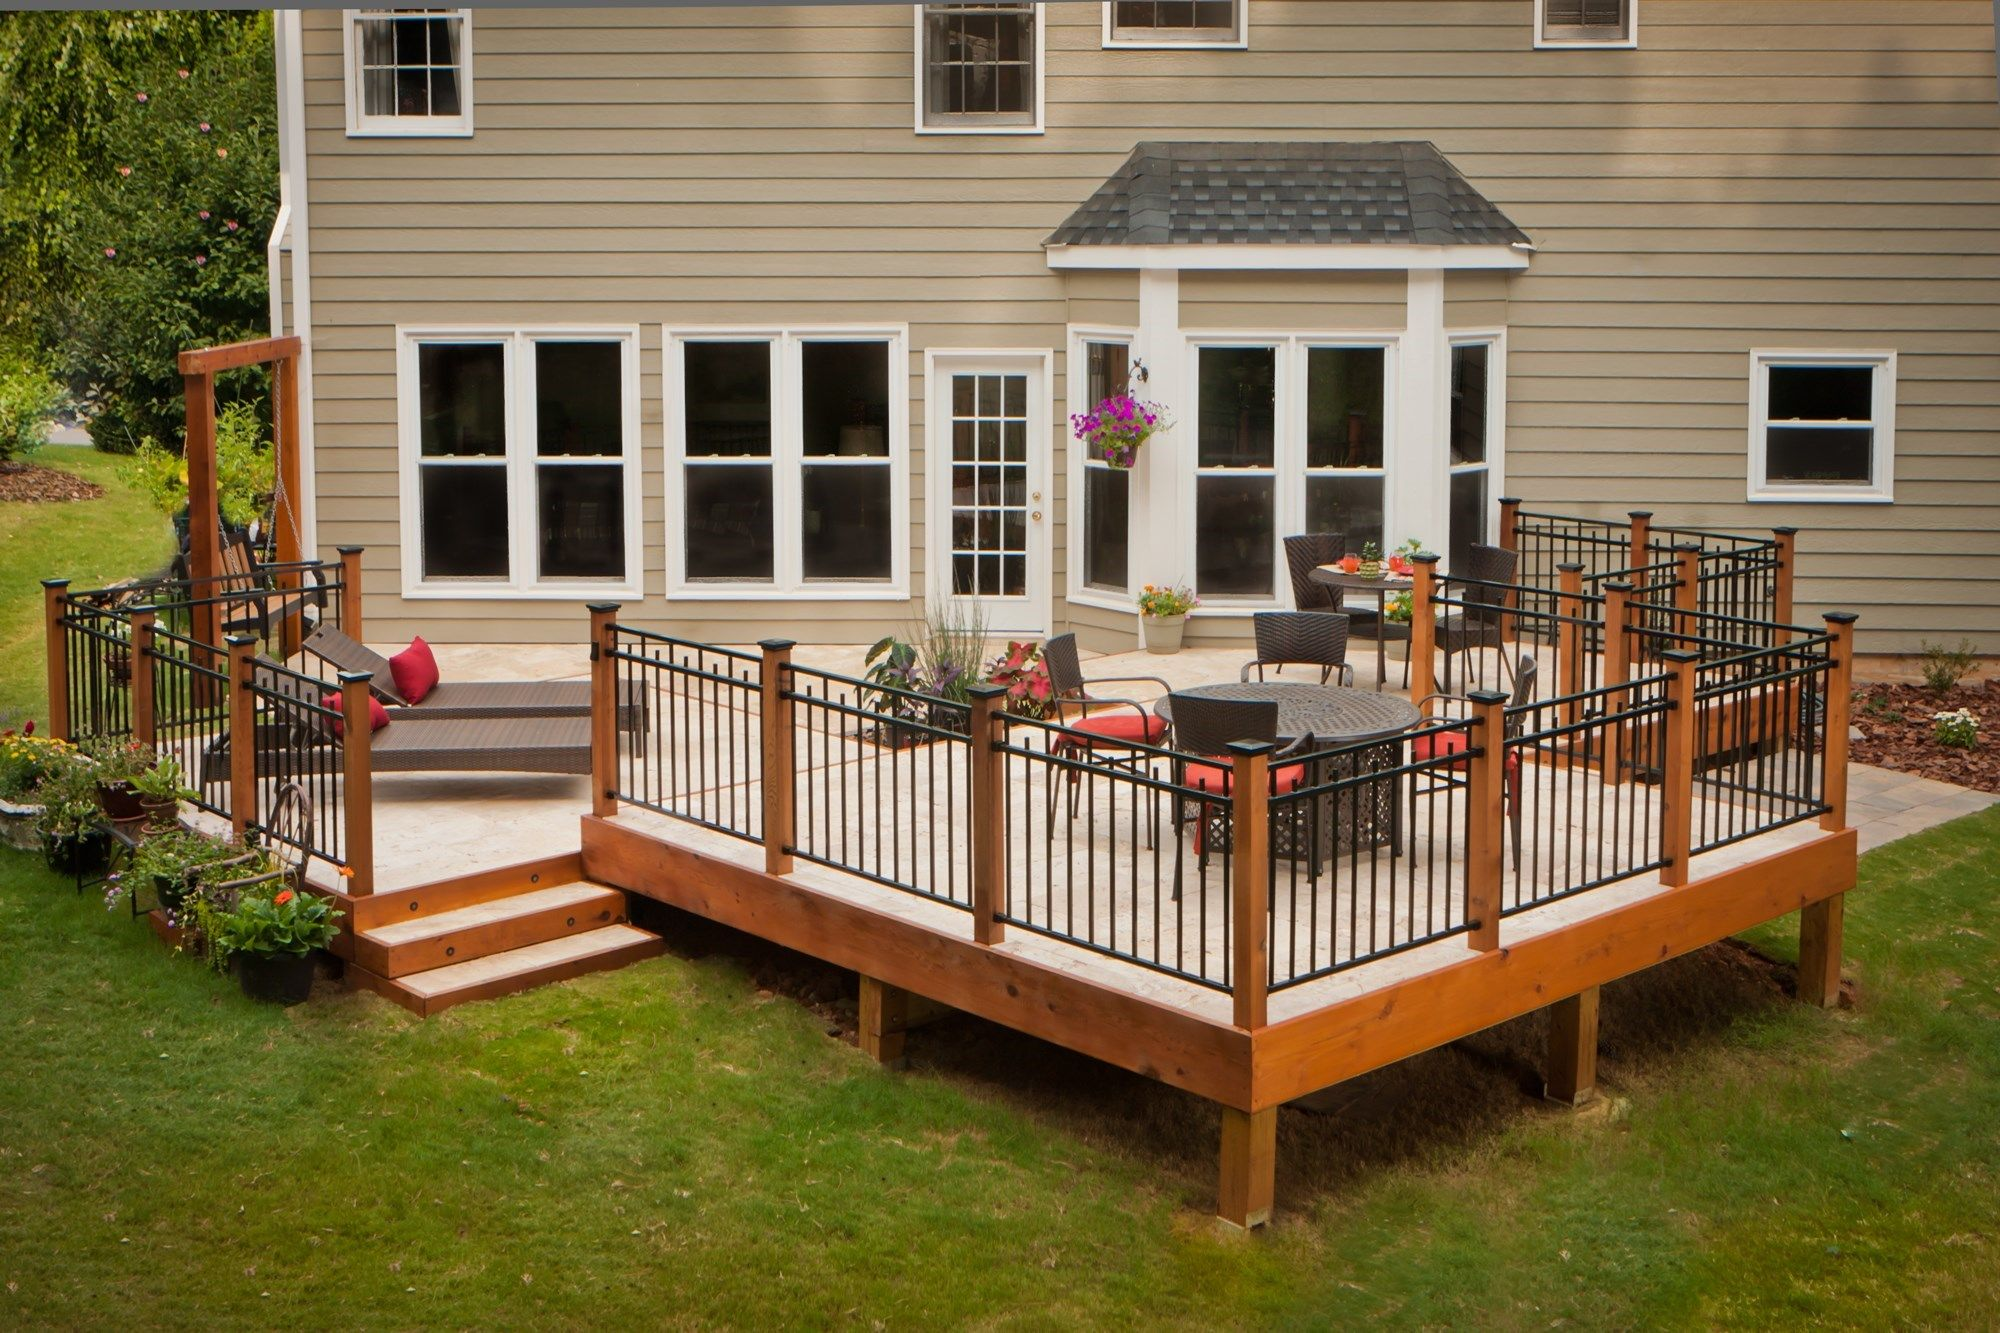 Stone Deck With Metal Railings - Picture 1086